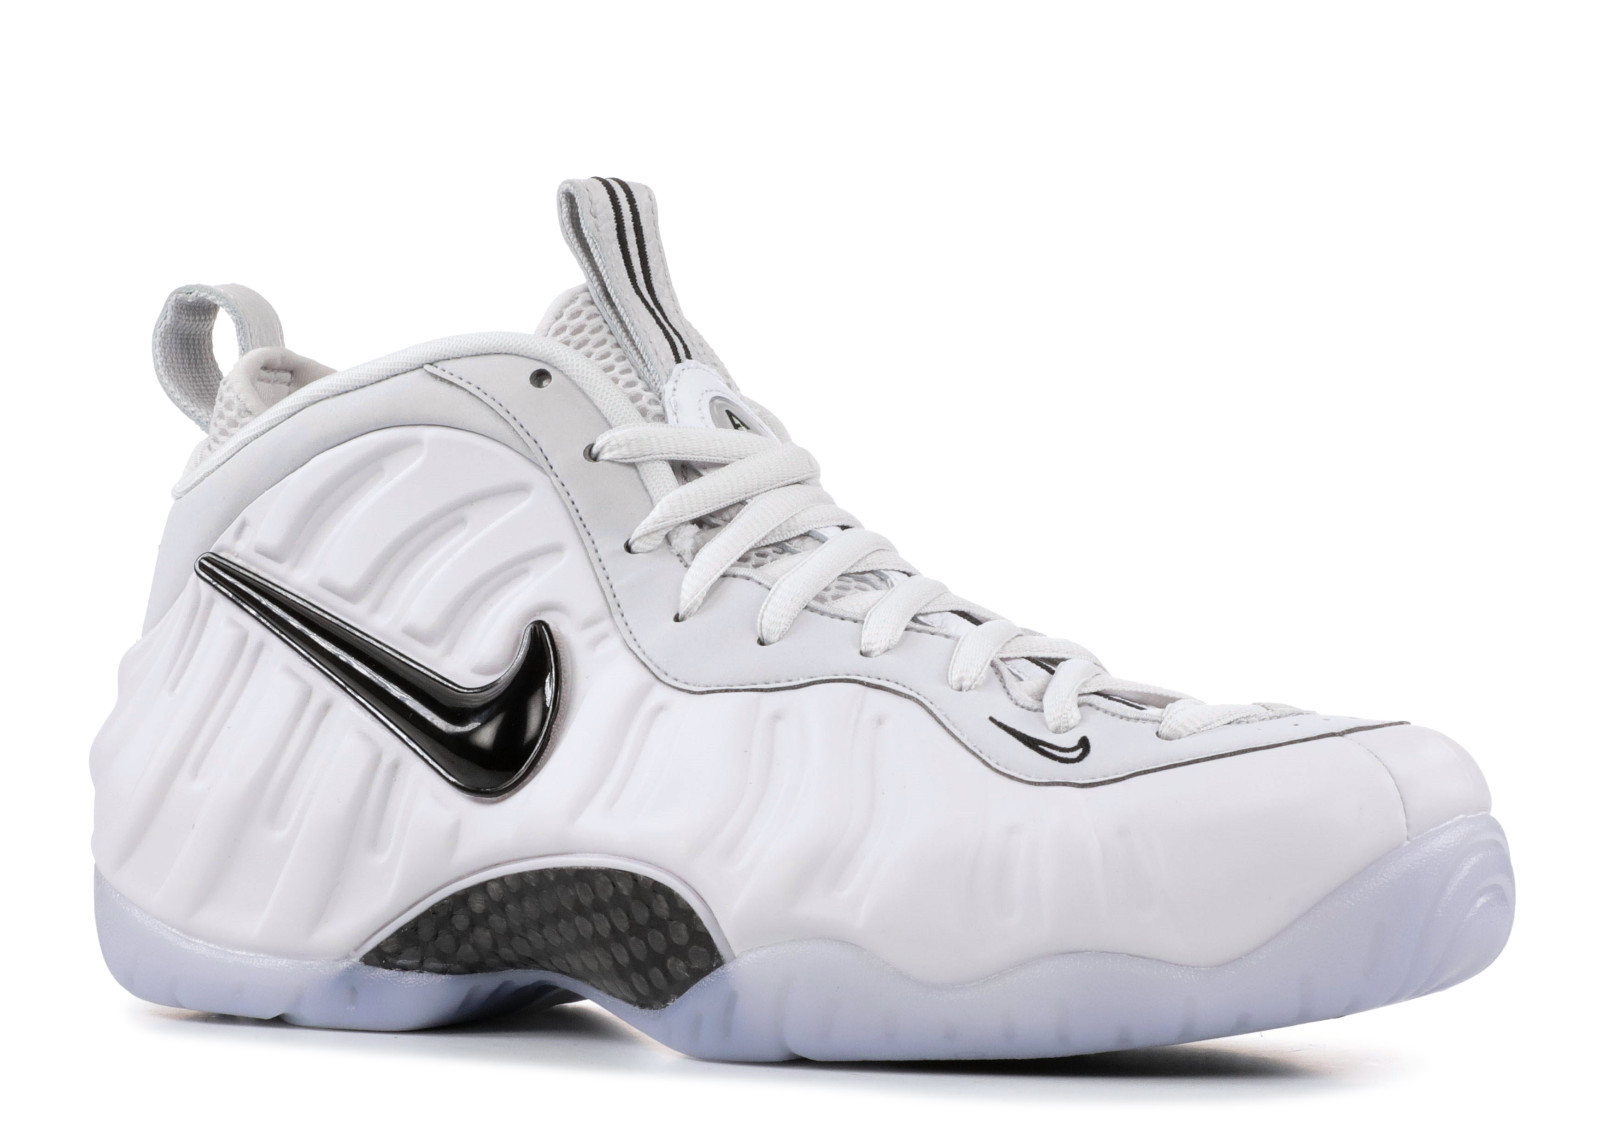 6a0896f7944 Nike - Men - Air Foamposite Pro As Qs  All Star  - Ao0817-001 - Size 10.5